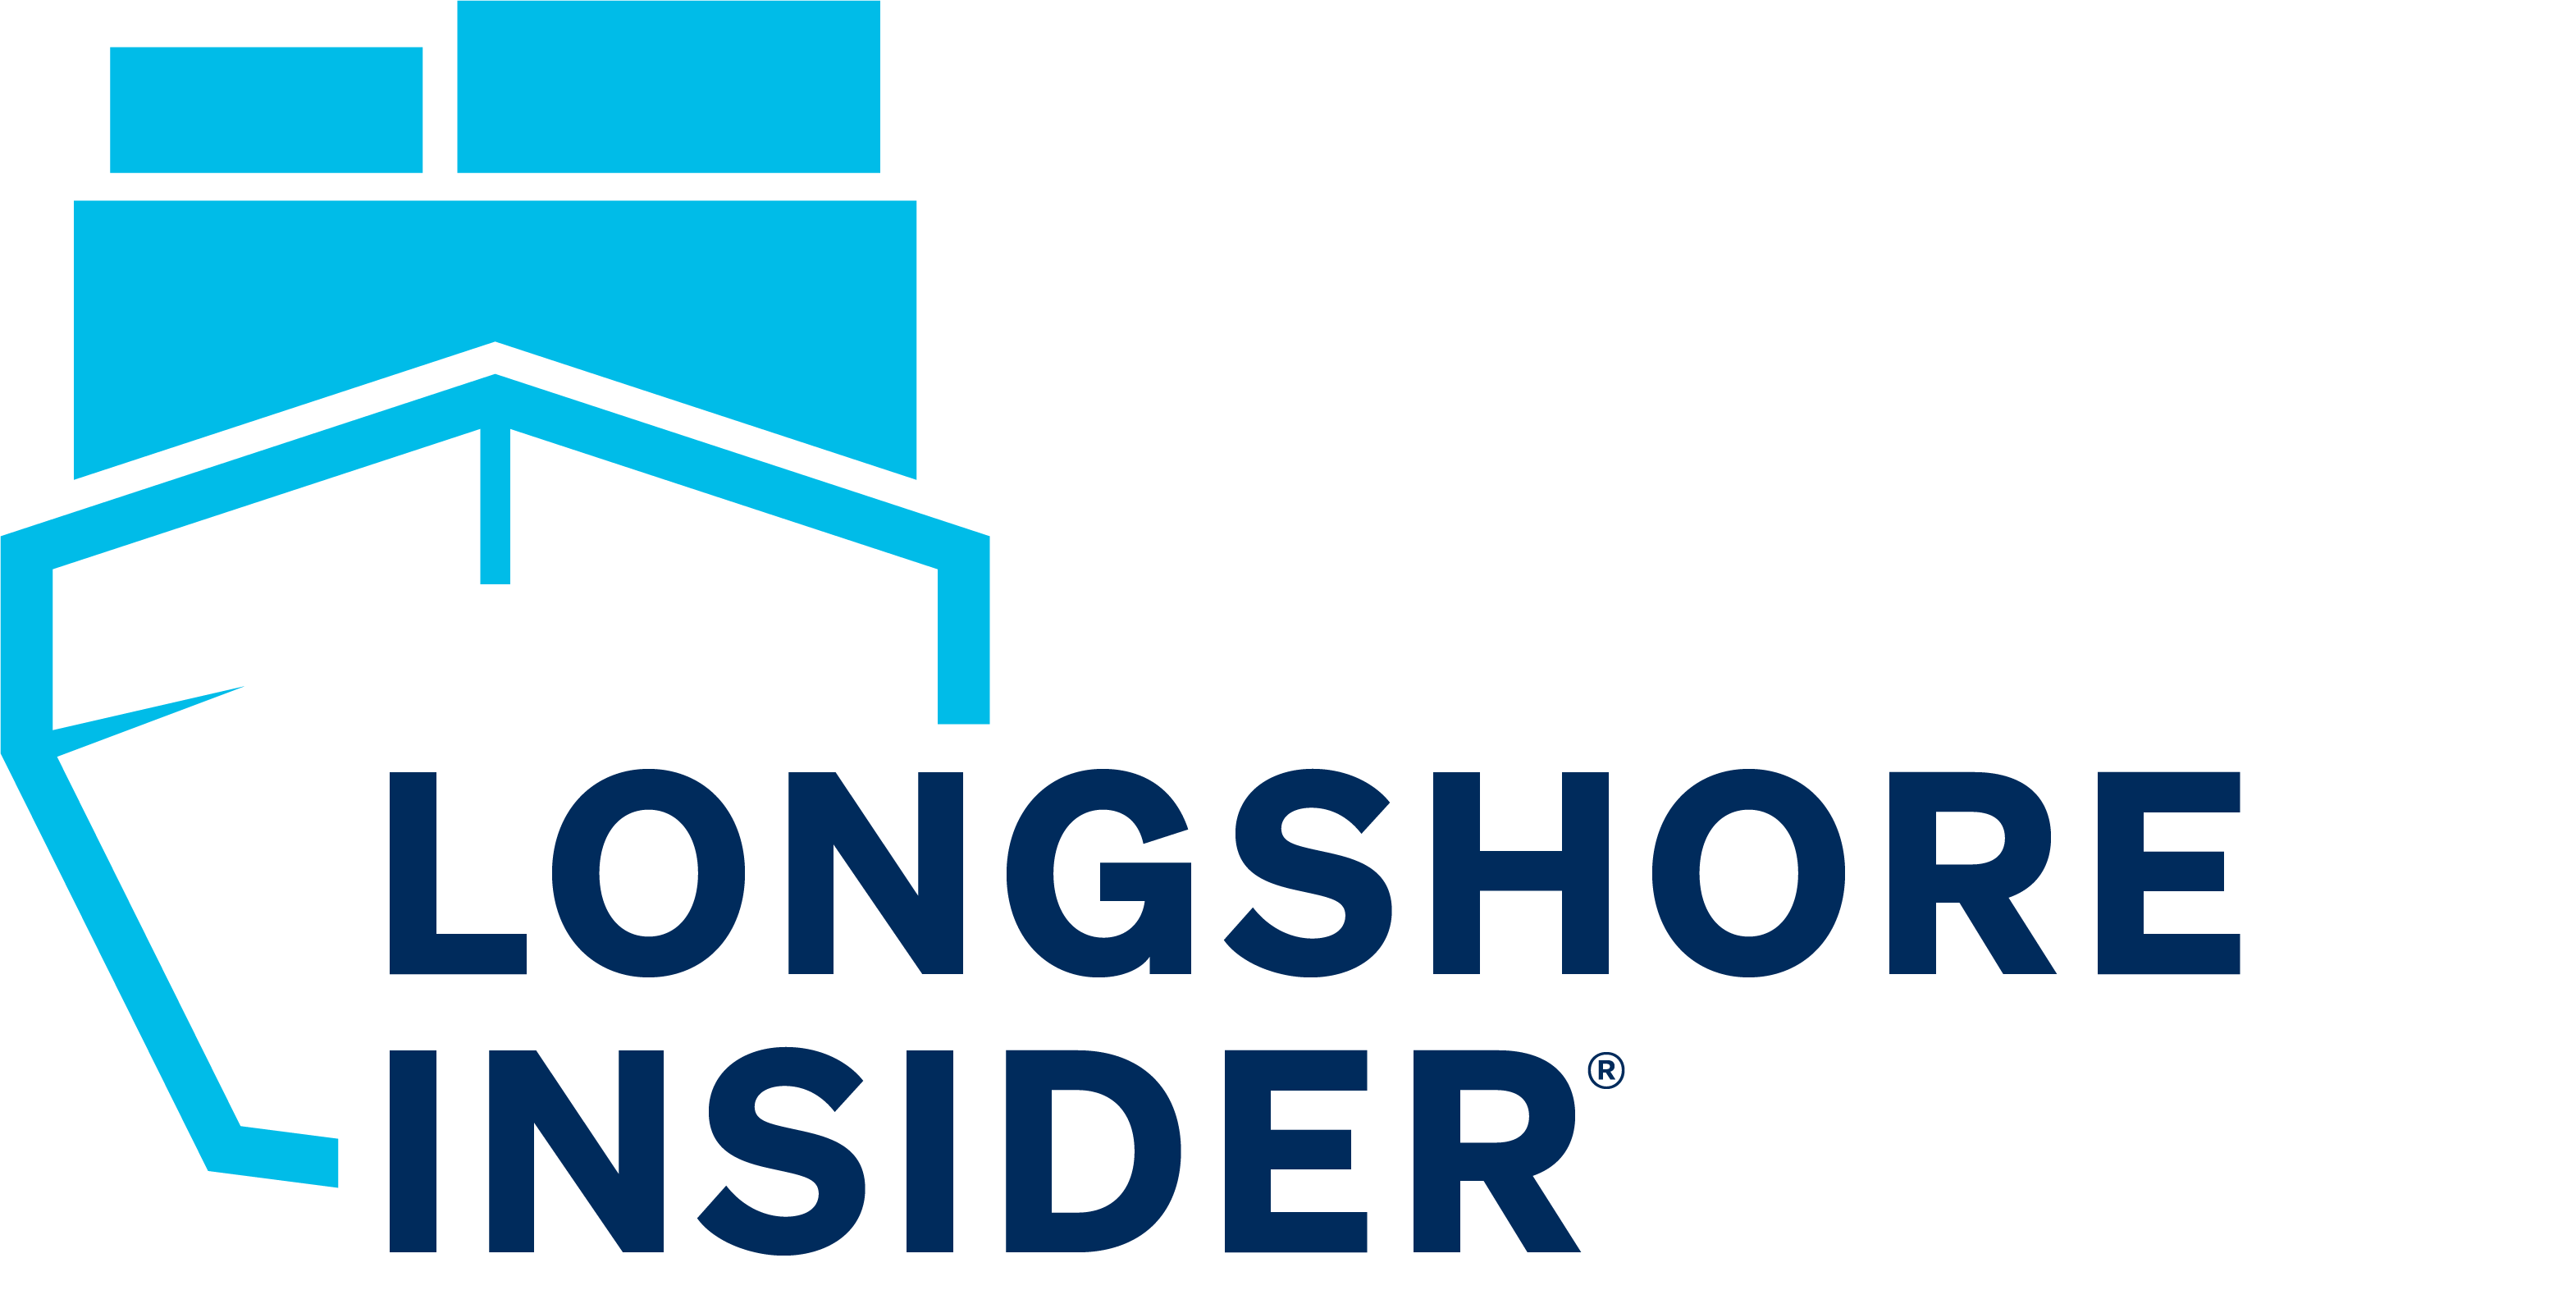 Longshore Insider - General No Tagline - 2C red